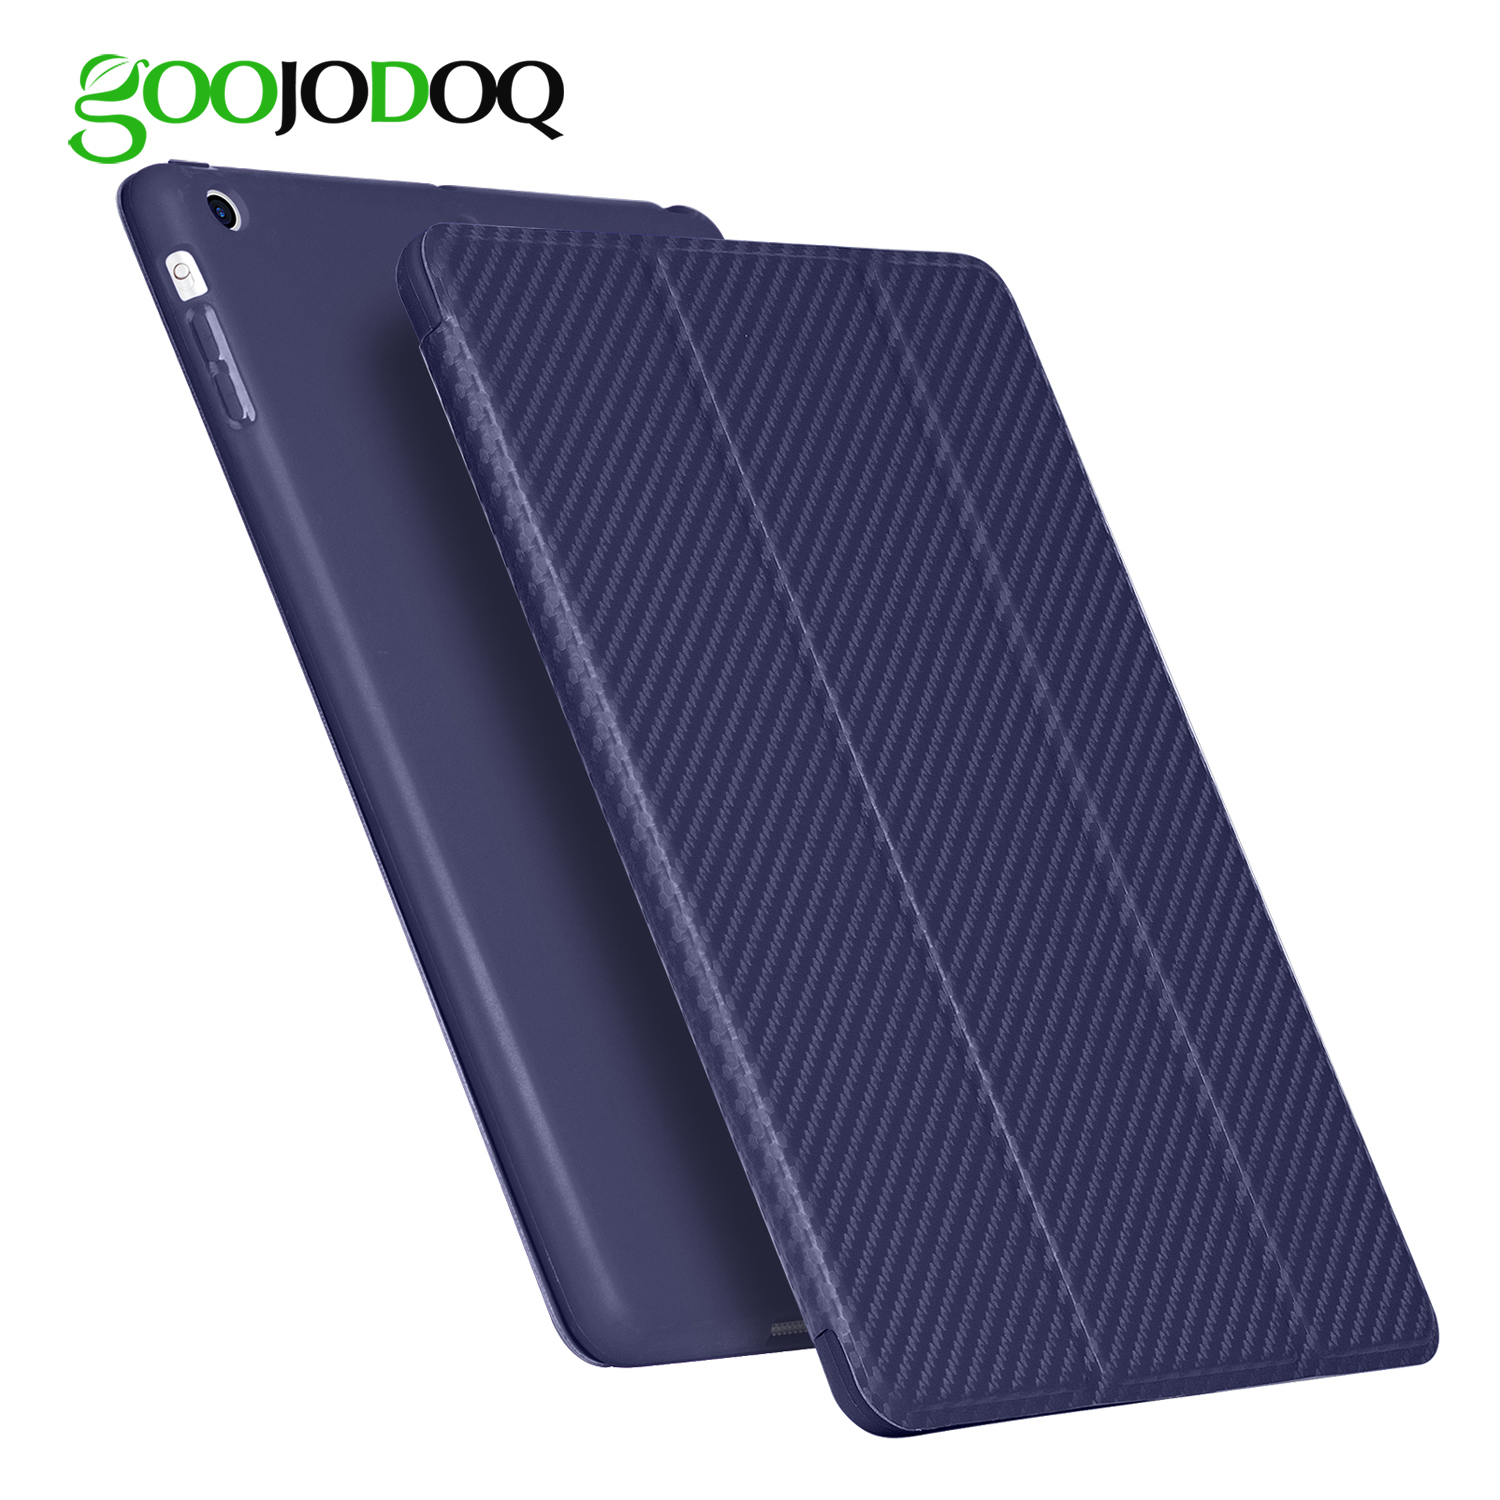 İPad Air 2, Apple iPad üçün GOOJODOQ Silikon Geri Qutusu iPad Air 2 iPad 6 PU Dəri Smart Cover A1566 A1567 Avtomatik Yuxu / Uyan